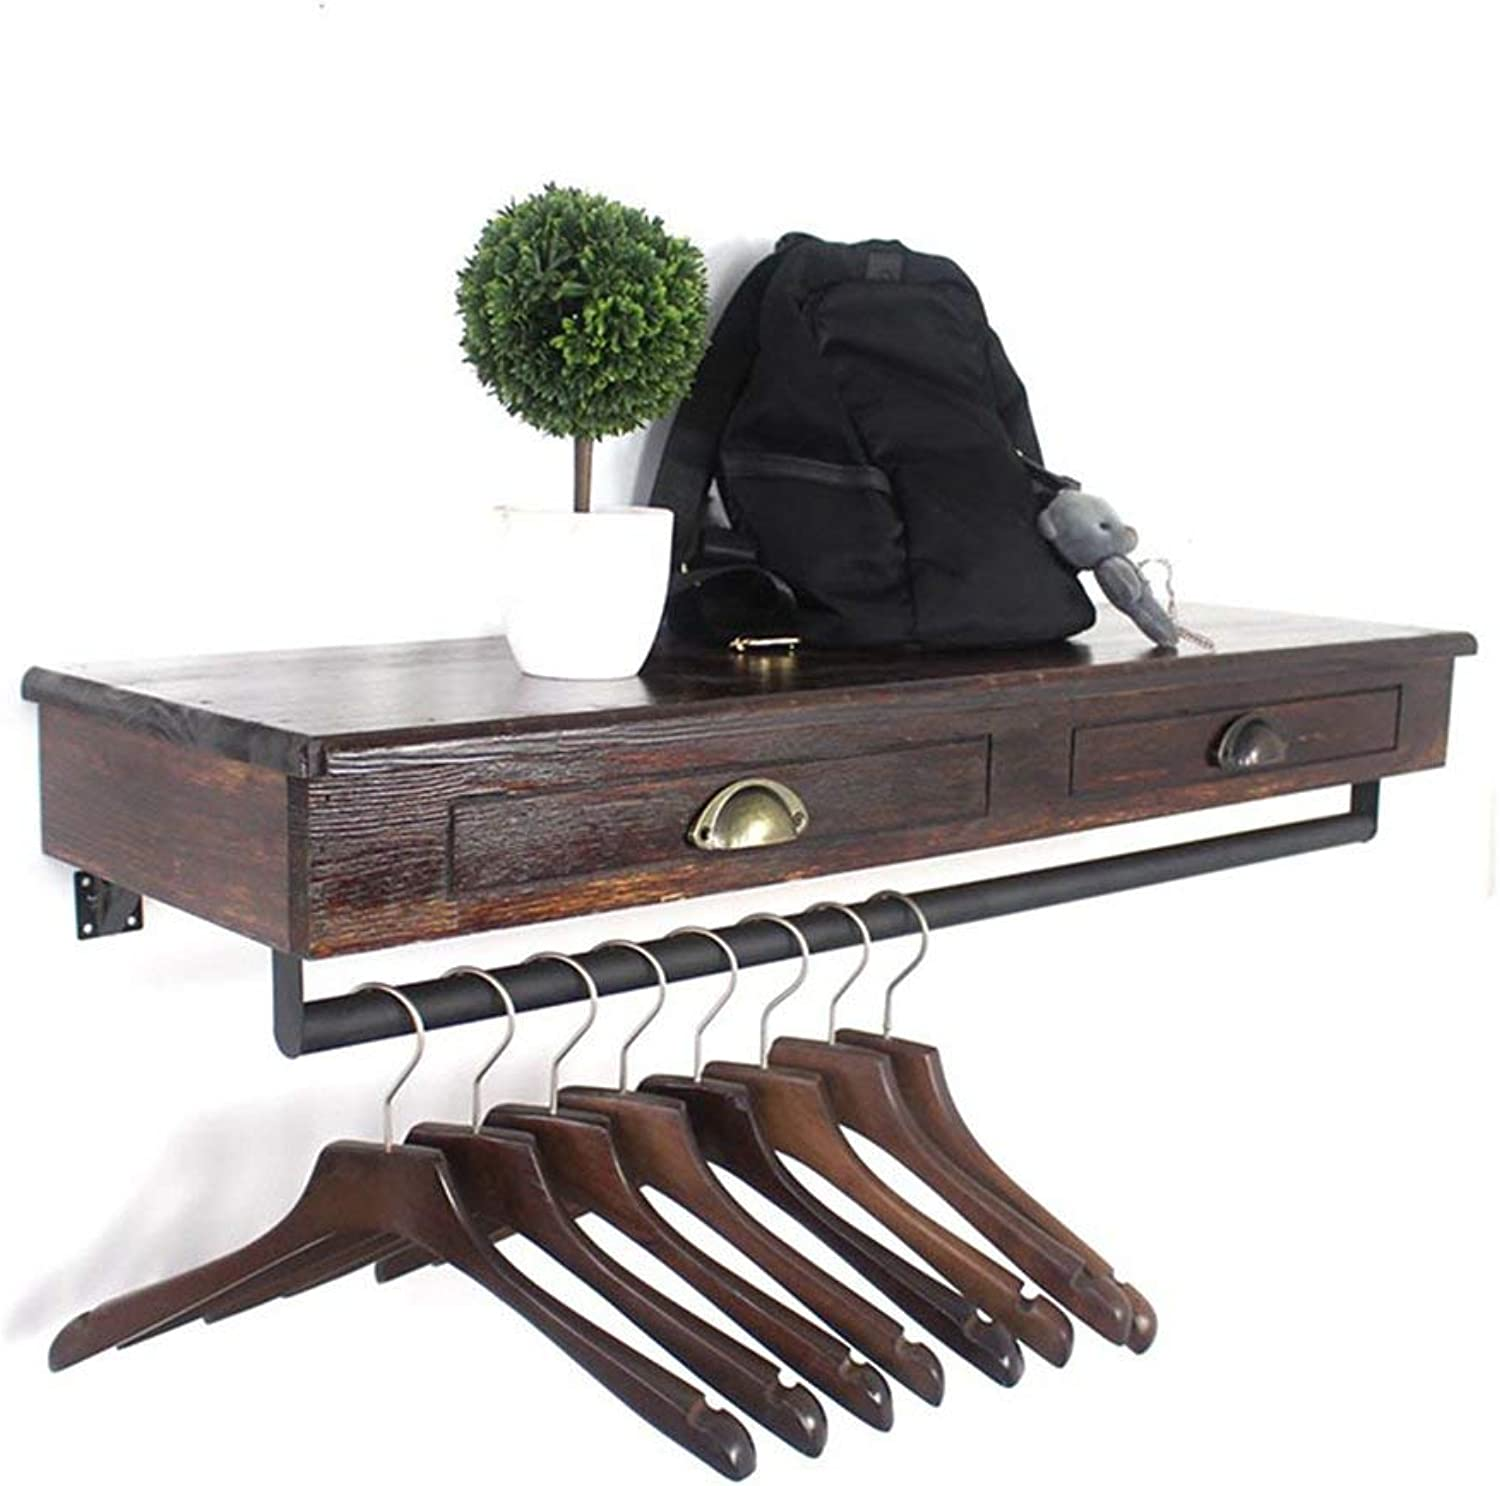 DYR Coat Rack Industrial Style Coat Rack Vintage Solid Wood Display Stand Iron Wall Wall Hanging Clothing Store Combined Display Rack 60CM, 80CM, 100CM, 120CM (Dimensions  60  30 cm)